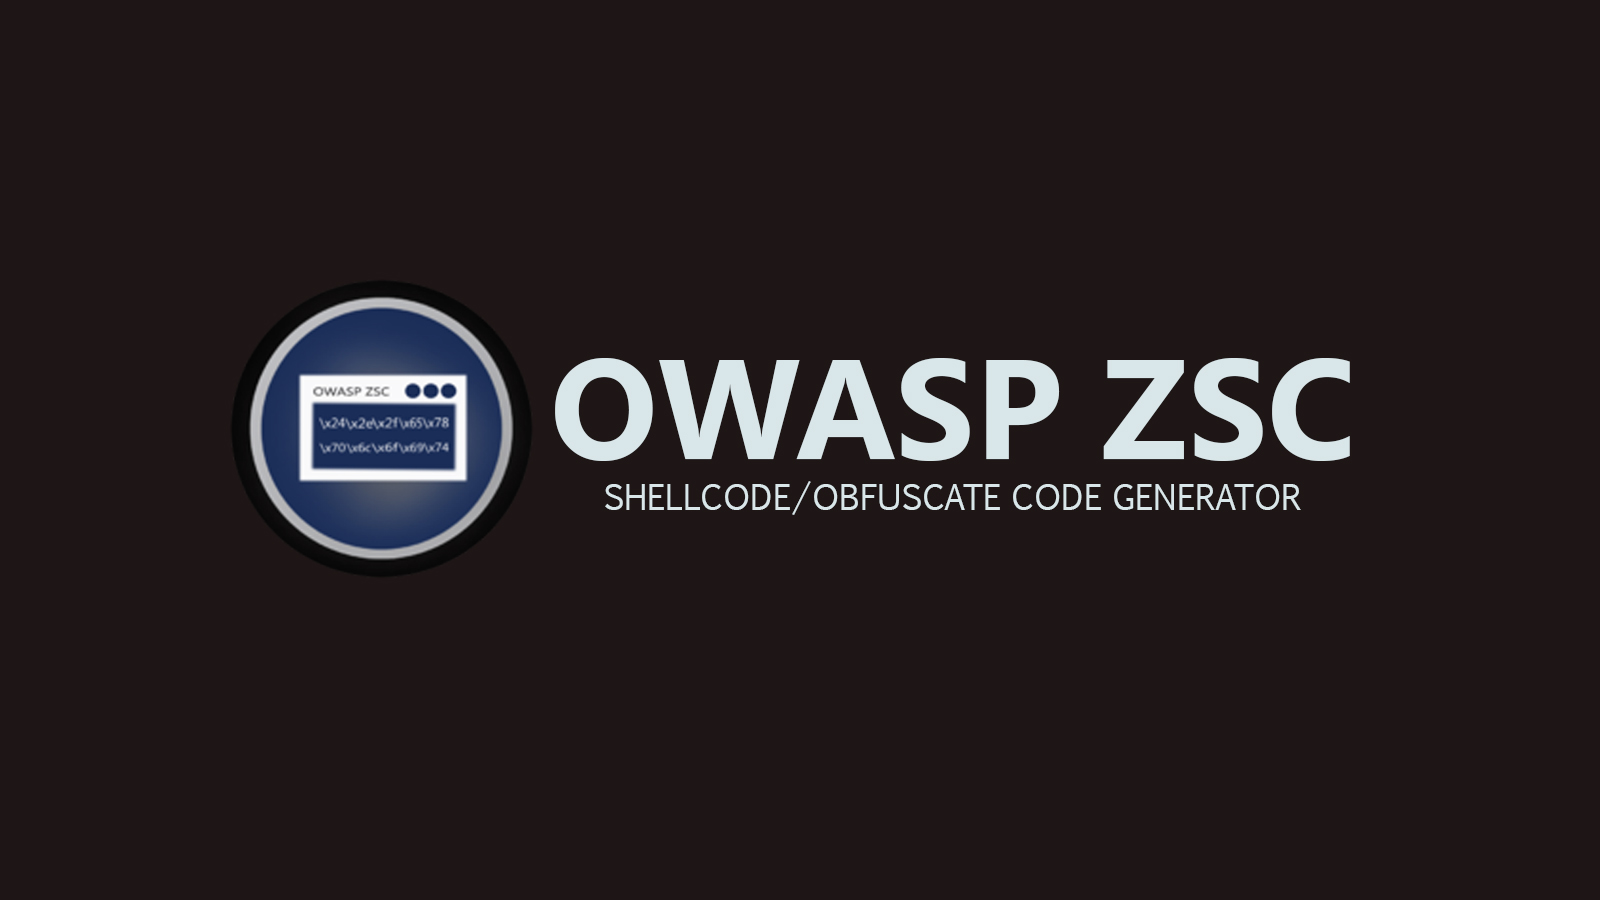 OWASP ZSC - Shellcode/Obfuscate Code Generator